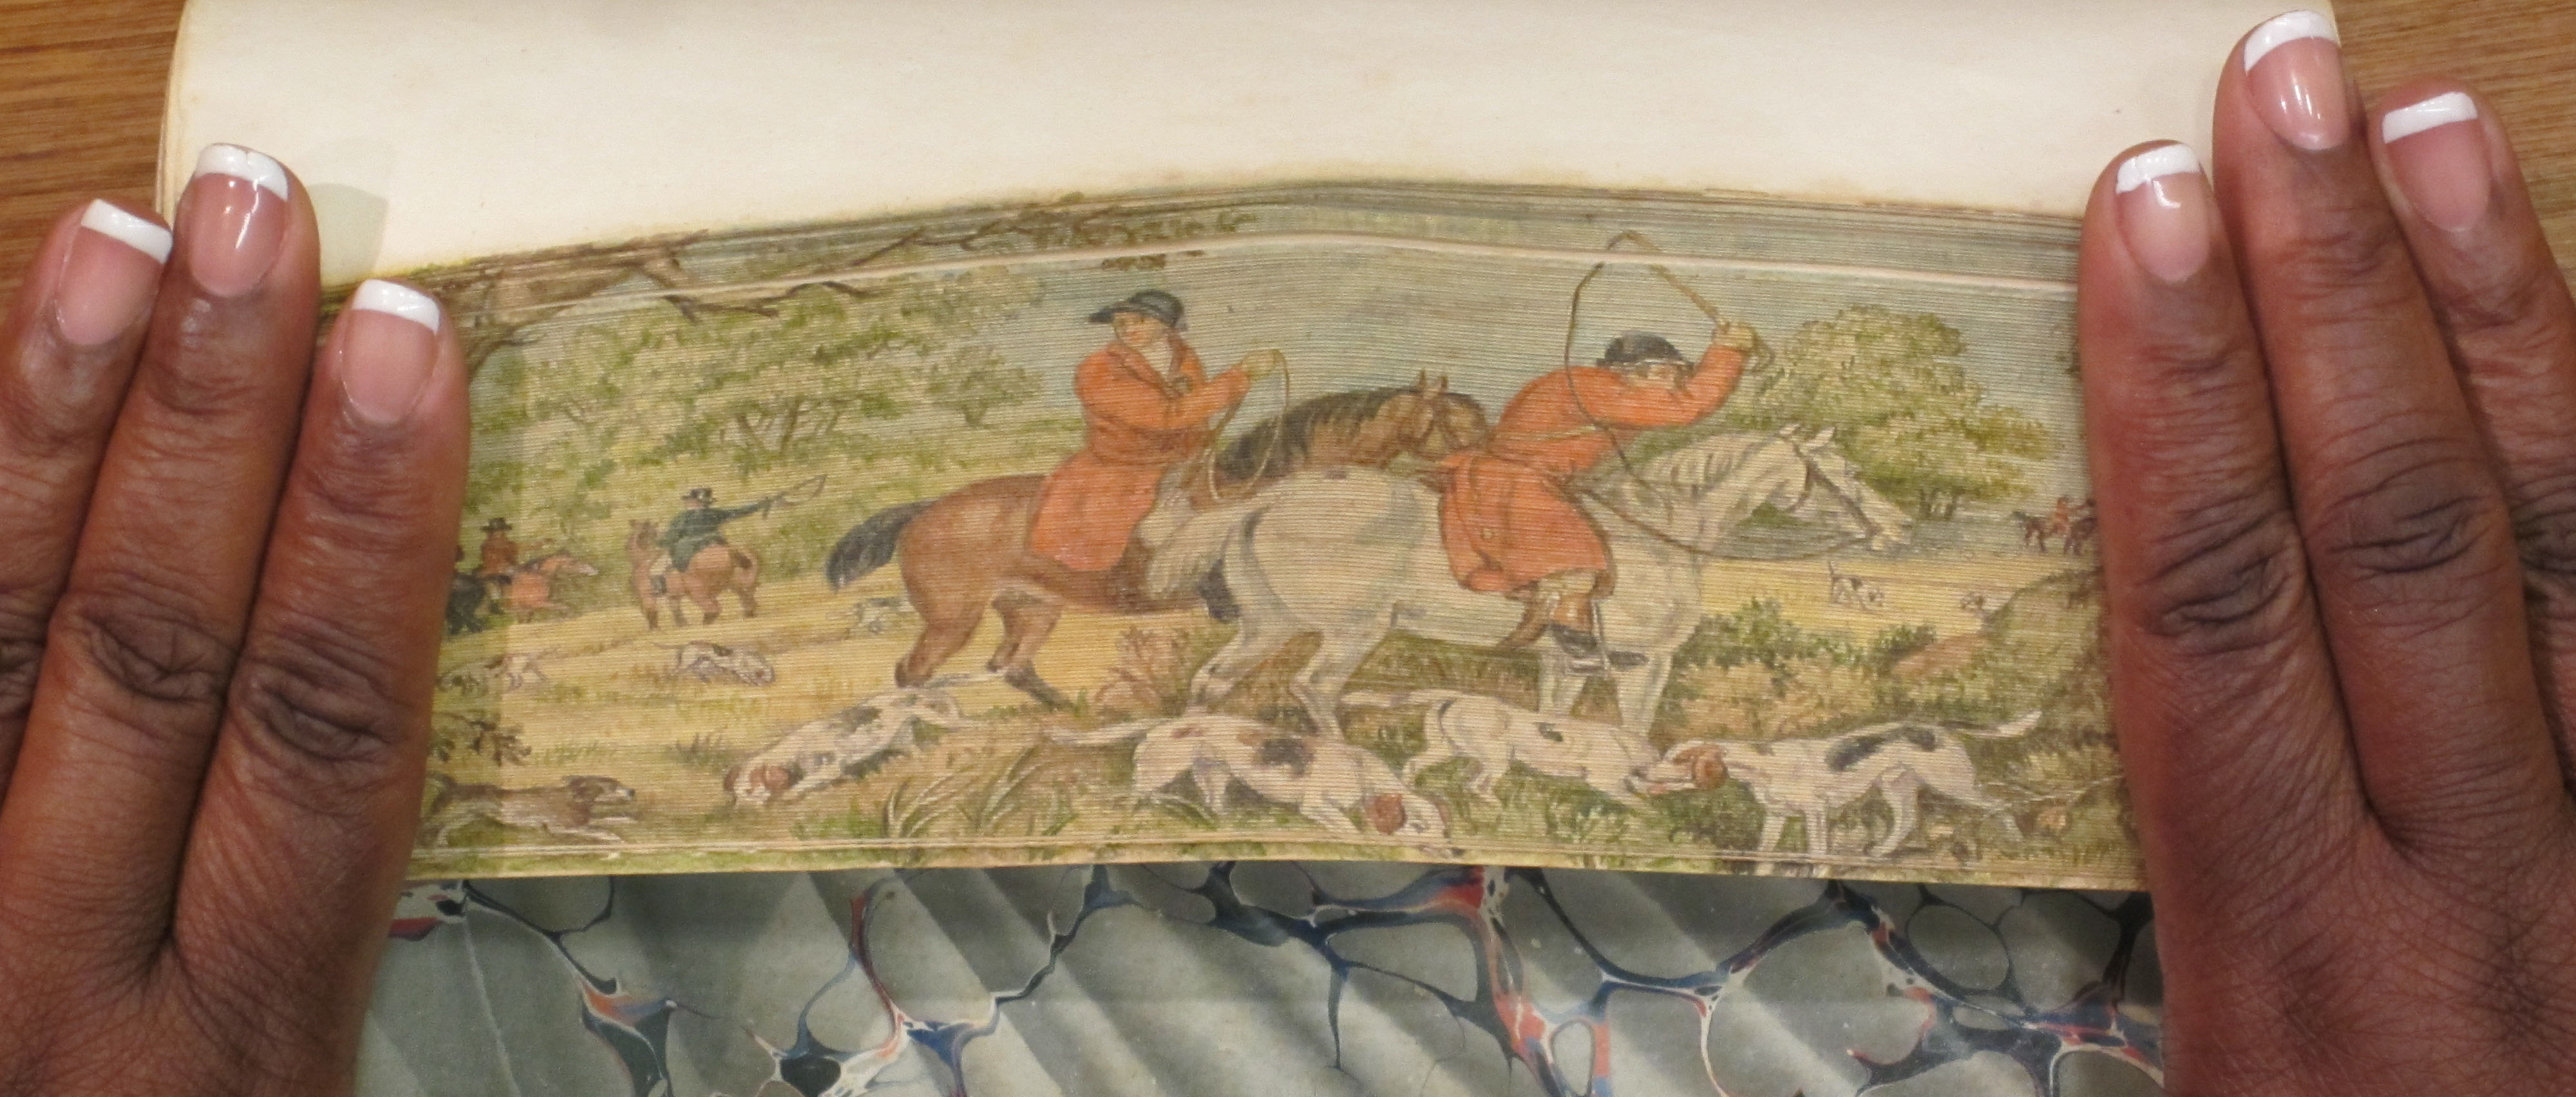 First fore edge painting from Thoughts on Hunting: